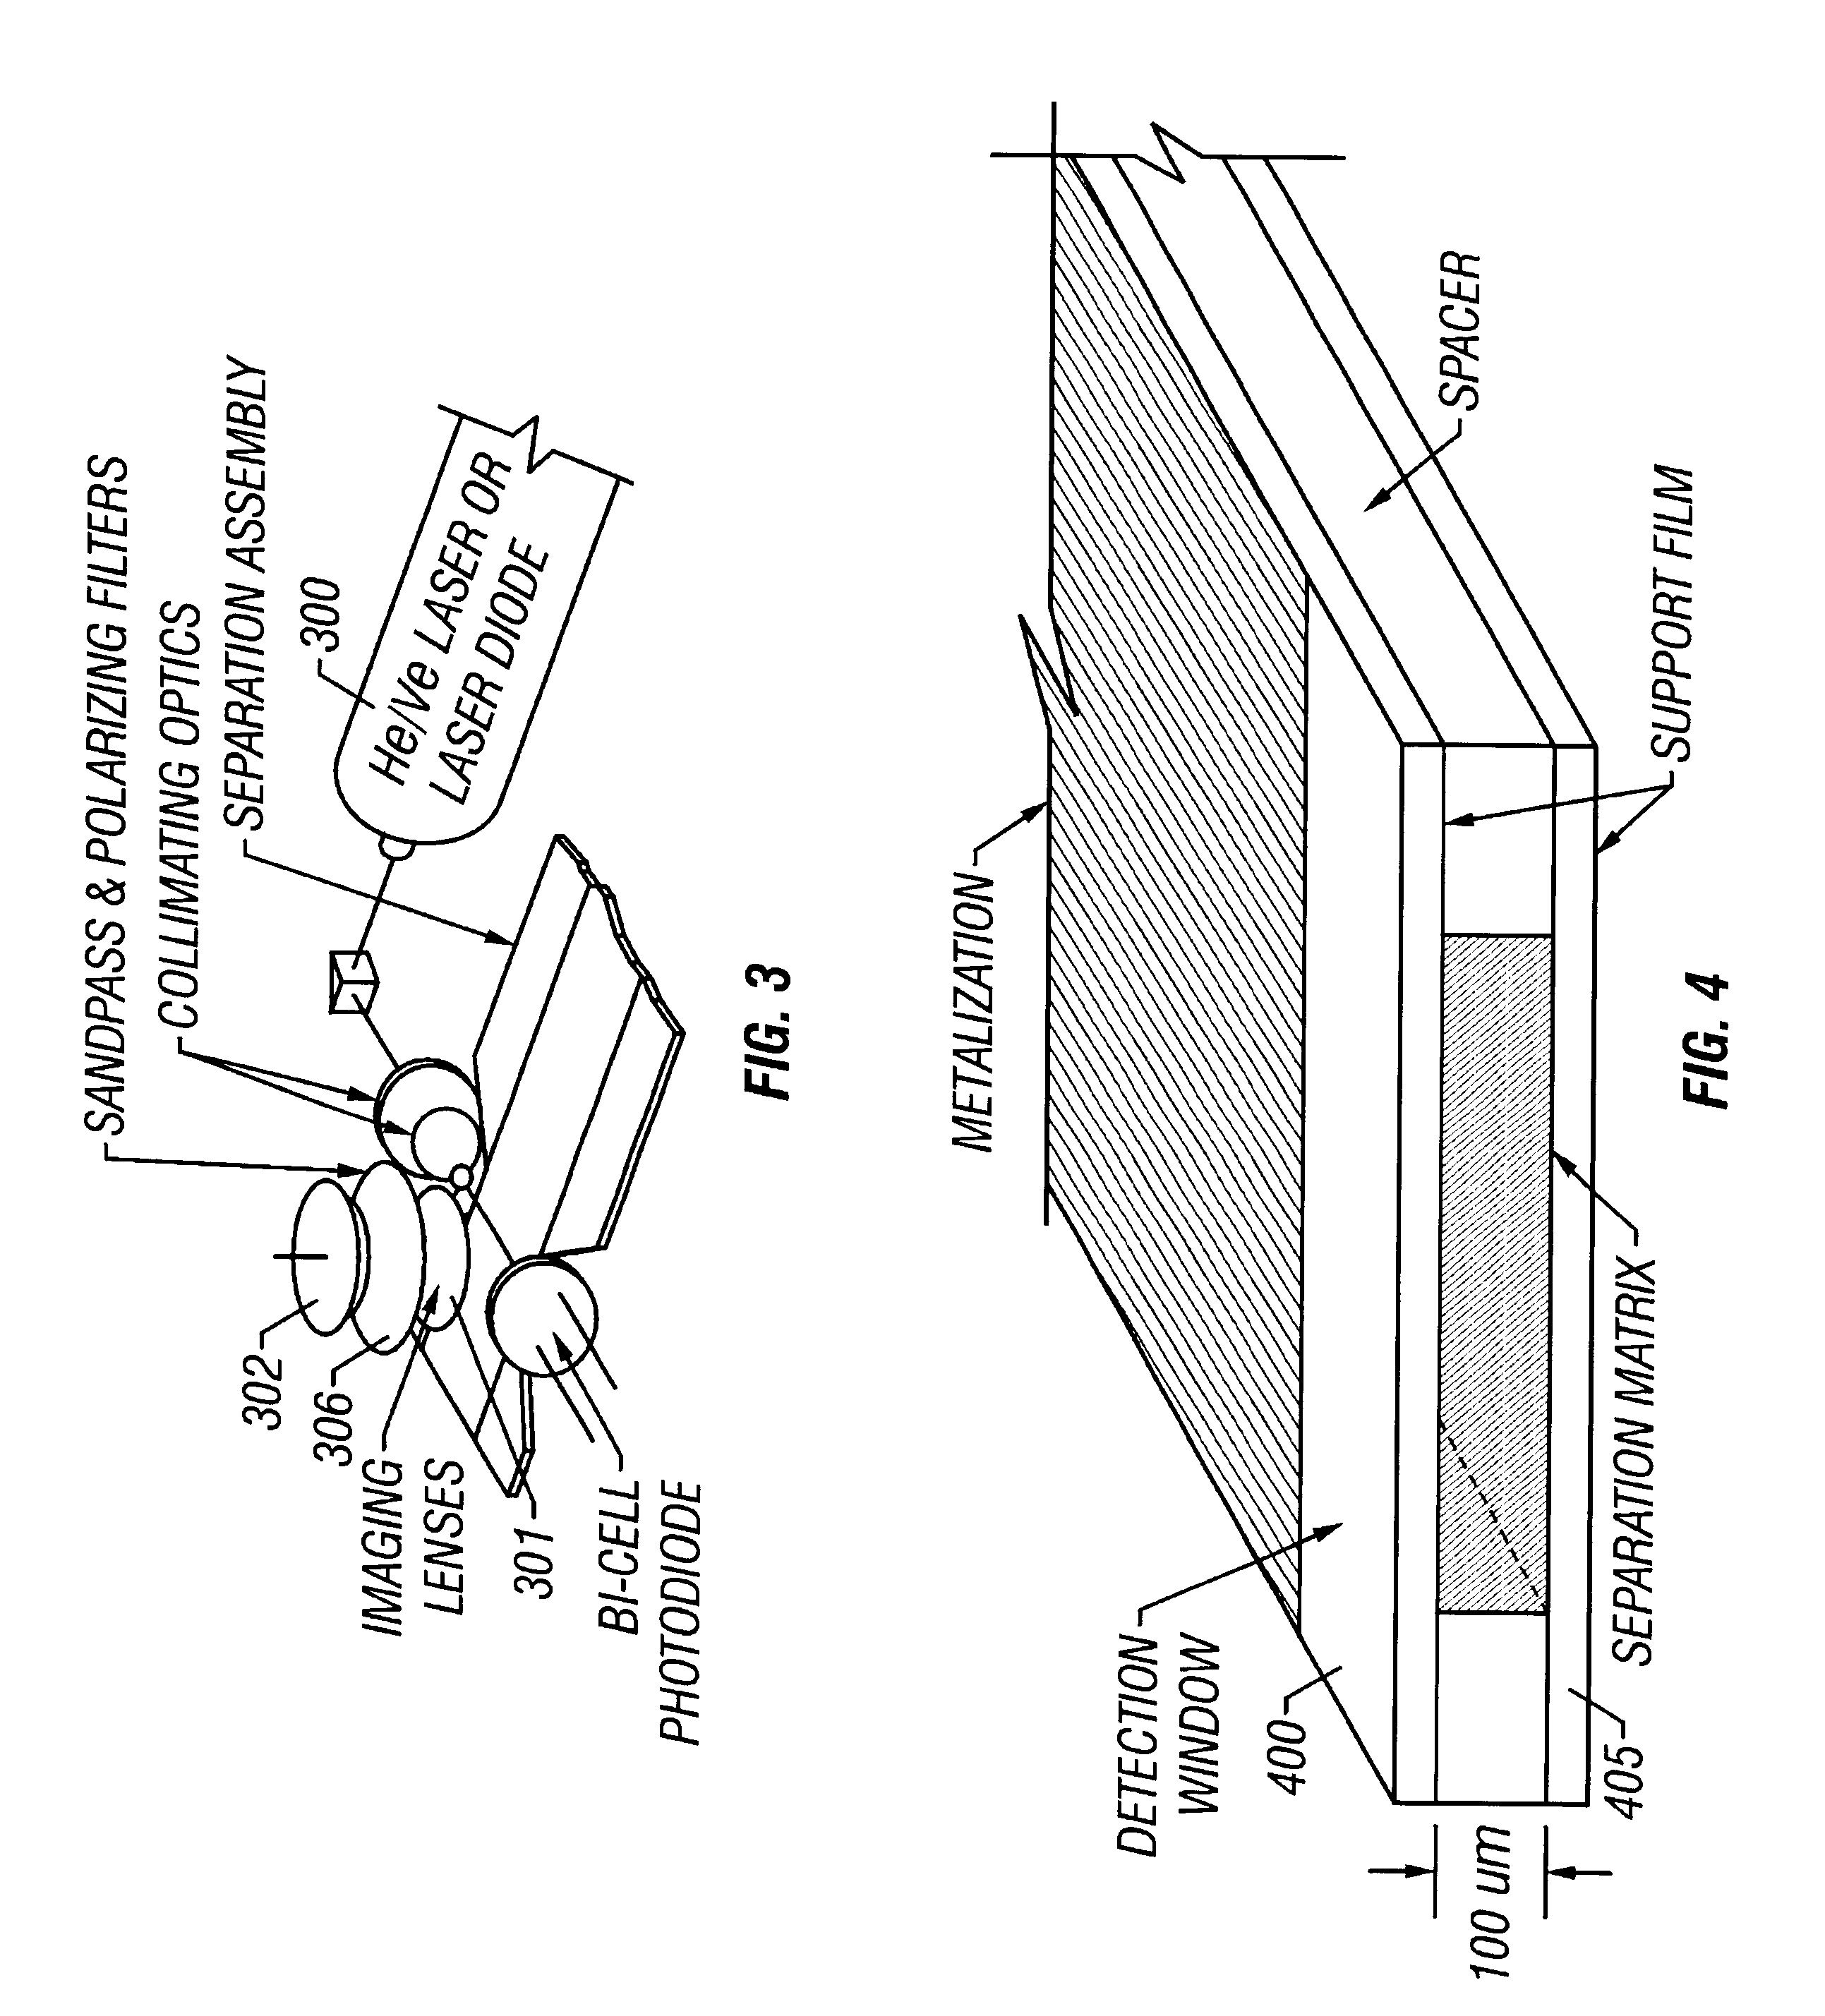 patent us6592735 - dna sequencing machine with improved cooling characteristics